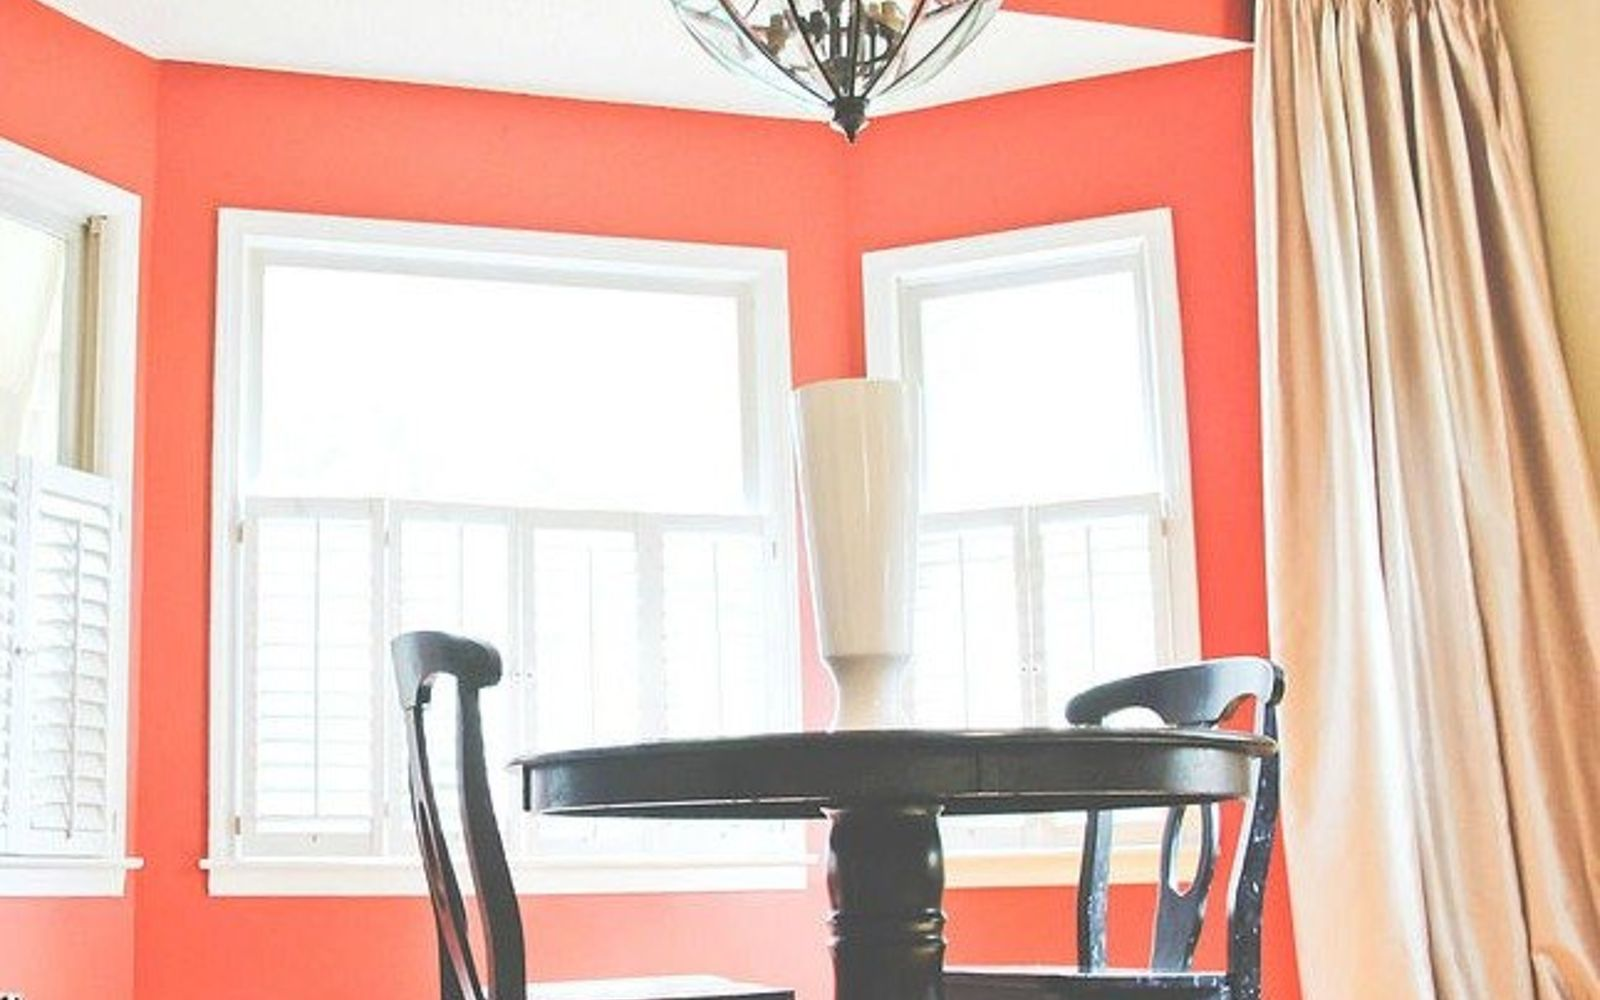 s 10 awesome paint colors to try in 2016, bedroom ideas, home decor, paint colors, Spicy Hue Sherwin Williams